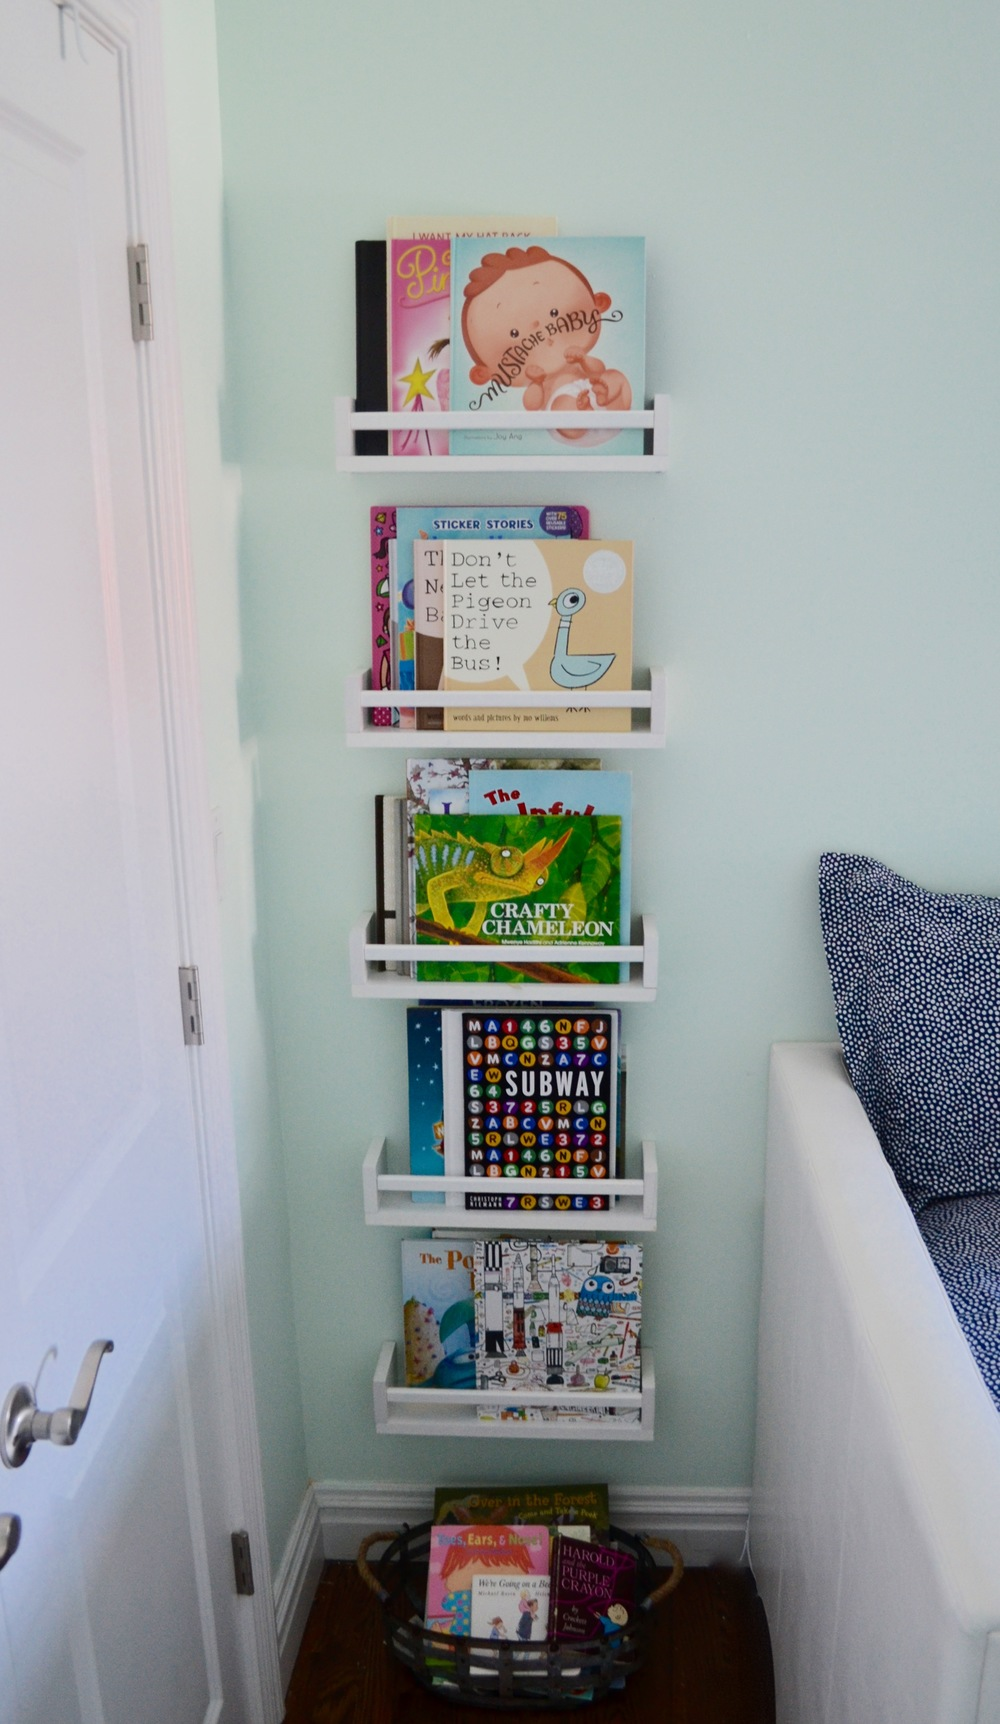 Client M is quite the little bookworm, so book storage was a priority. Wall-mounted shelves, bins and baskets for overflow did the trick.